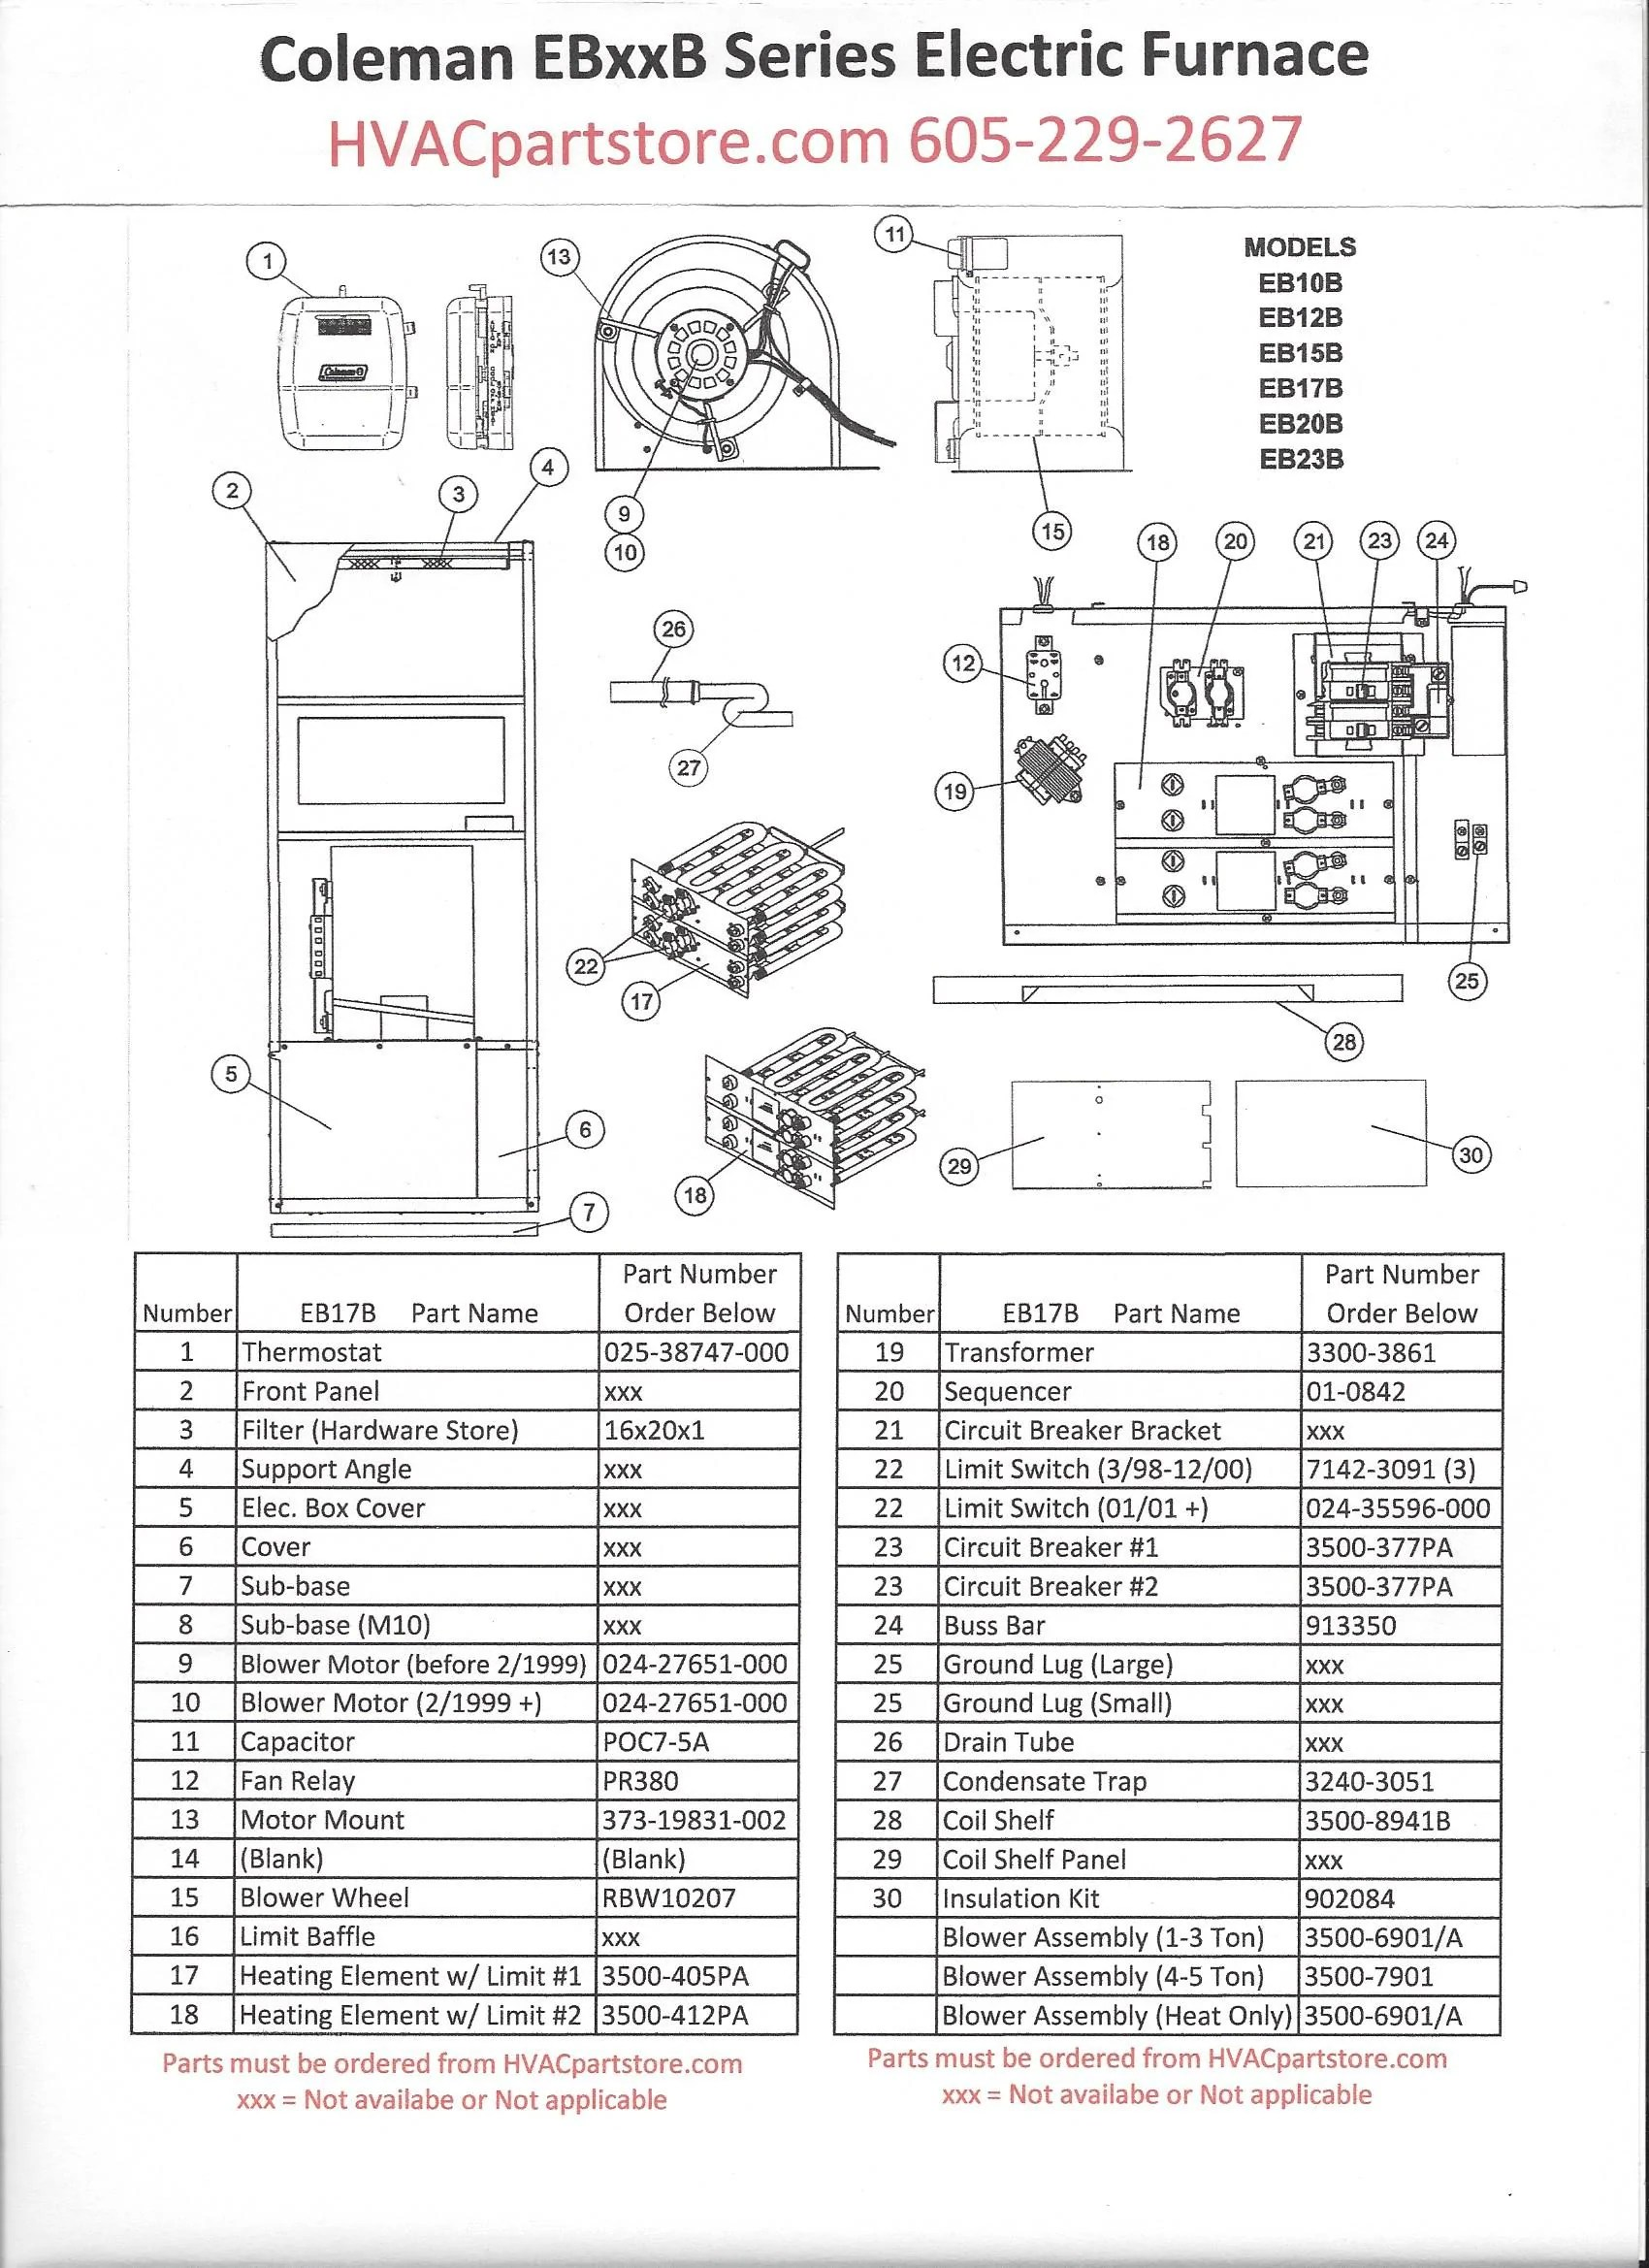 central electric furnace wiring diagram wiring diagram electric furnace wiring diagram elec furnace wiring diagram [ 1700 x 2338 Pixel ]